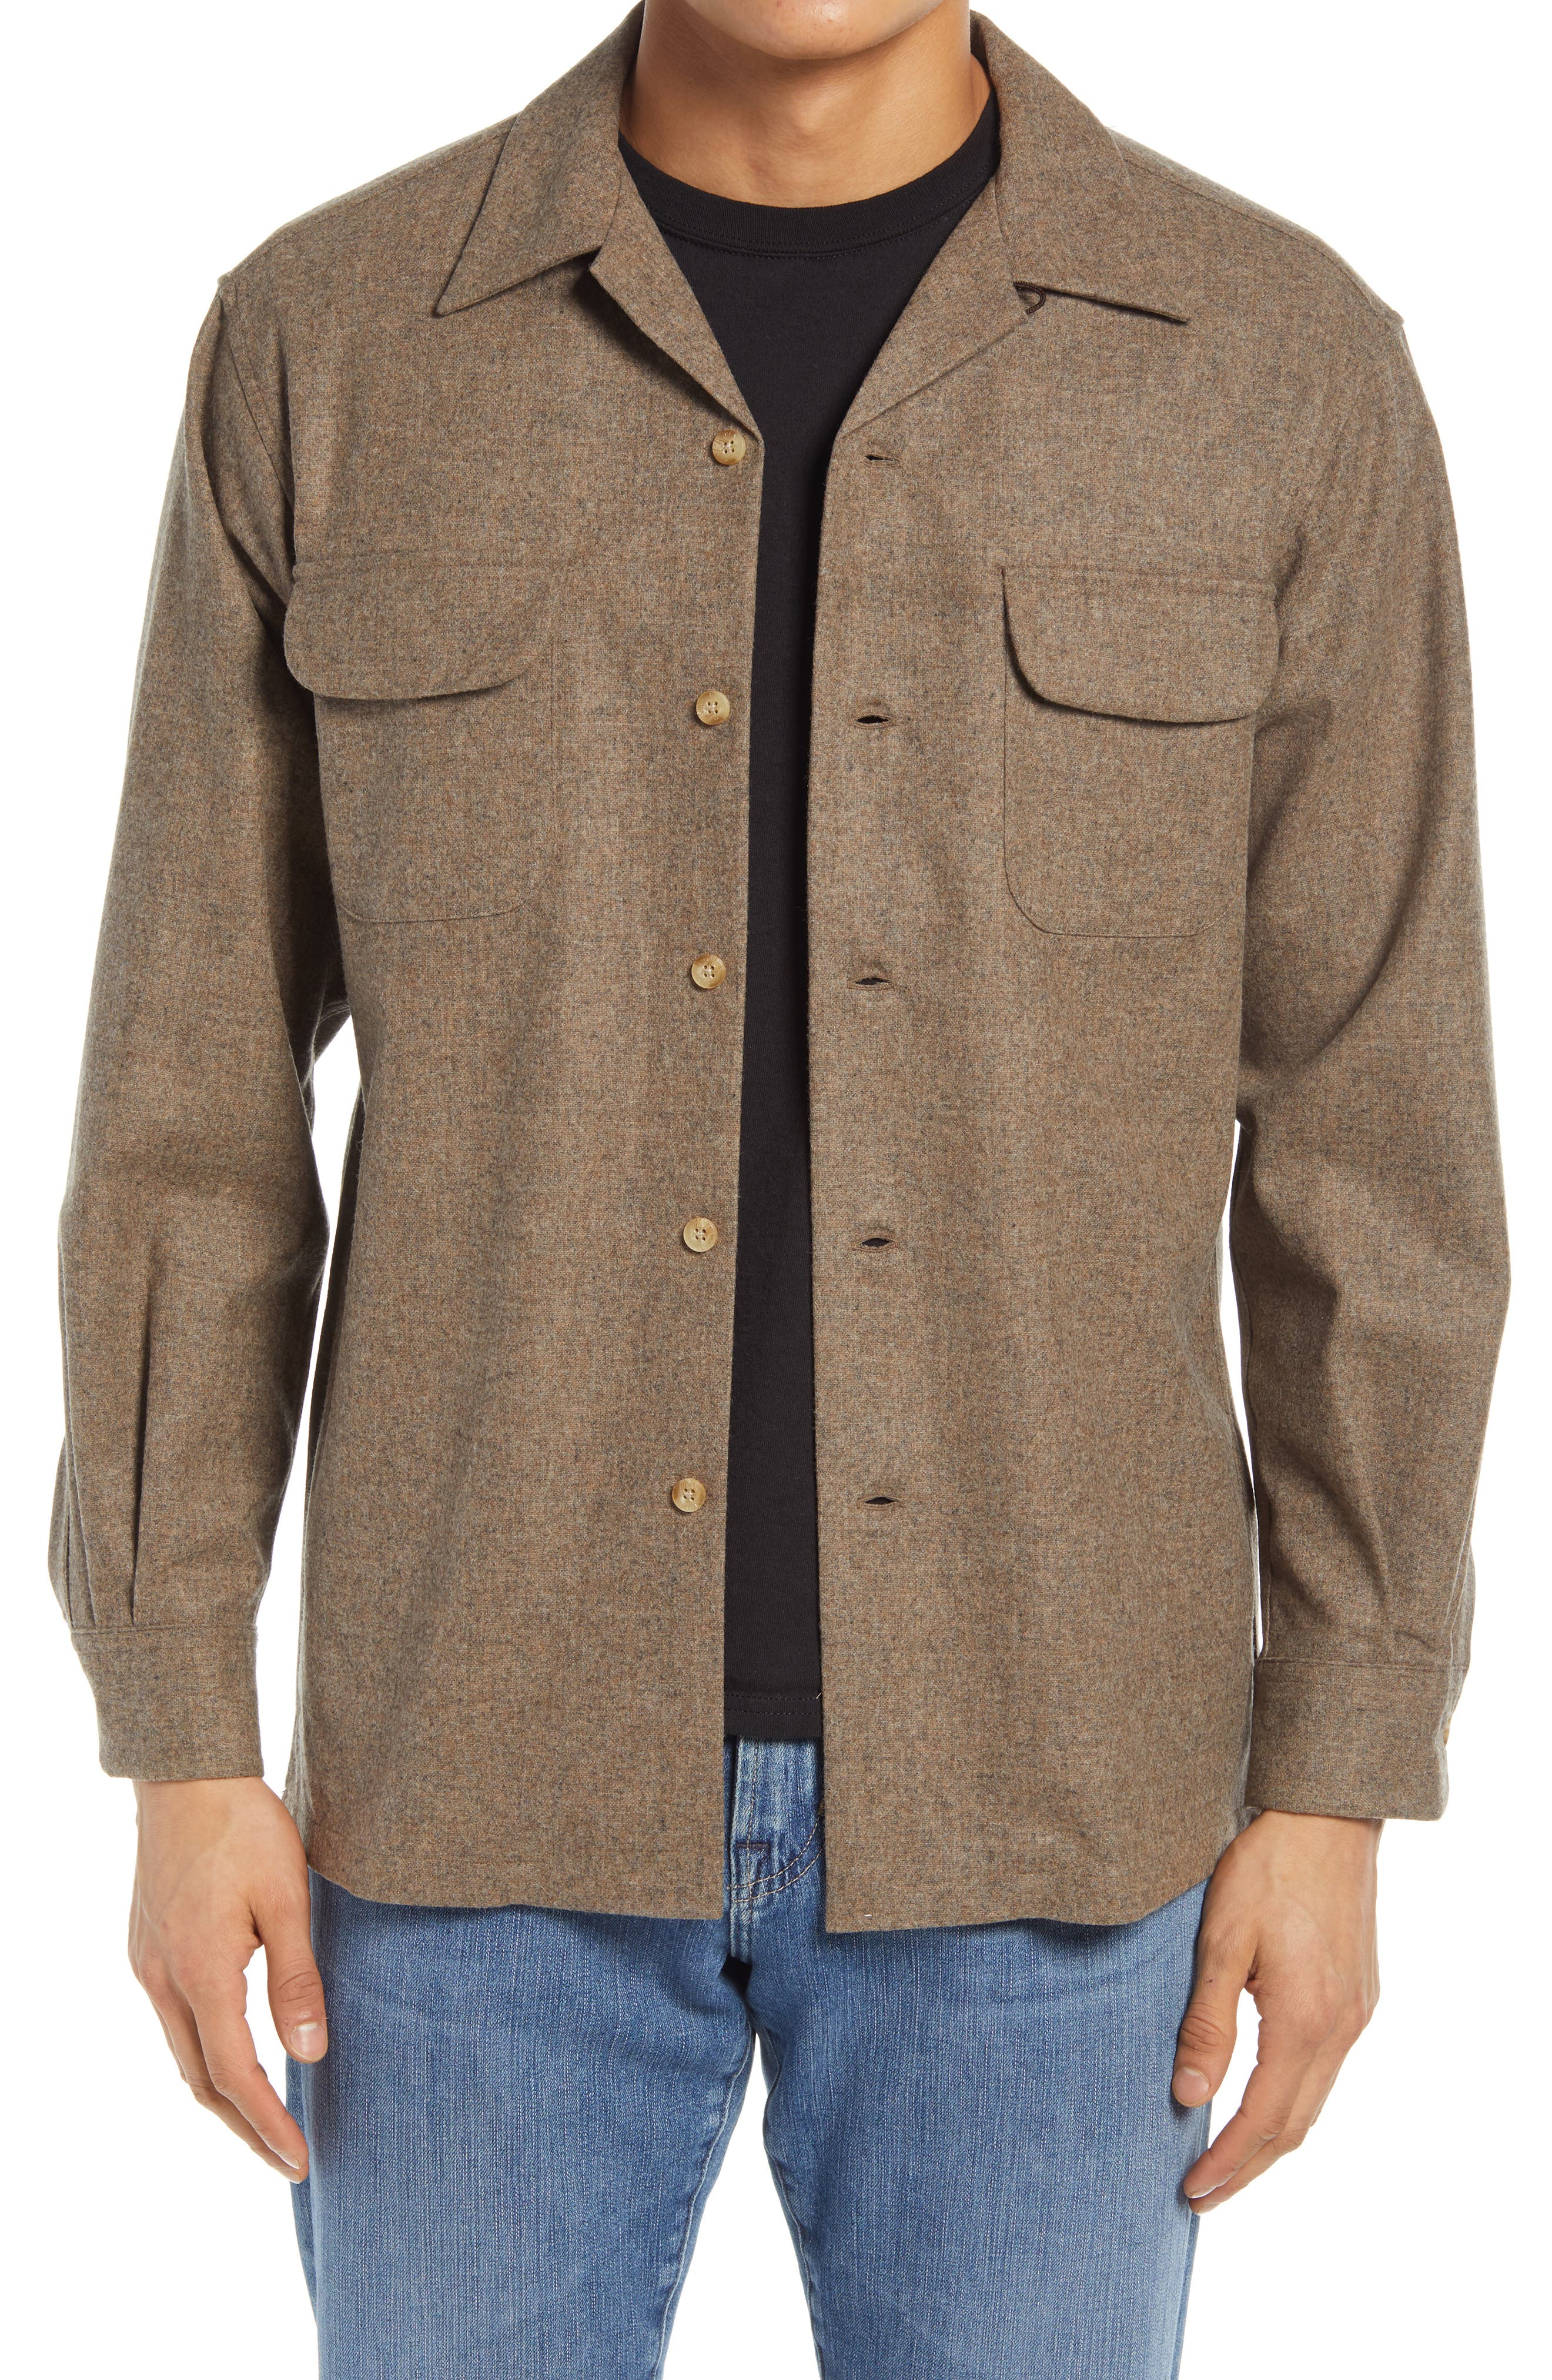 1940s Men's Shirts, Sweaters, Vests Mens Pendleton Board Lined Wool Shirt Size Small - Brown $149.00 AT vintagedancer.com